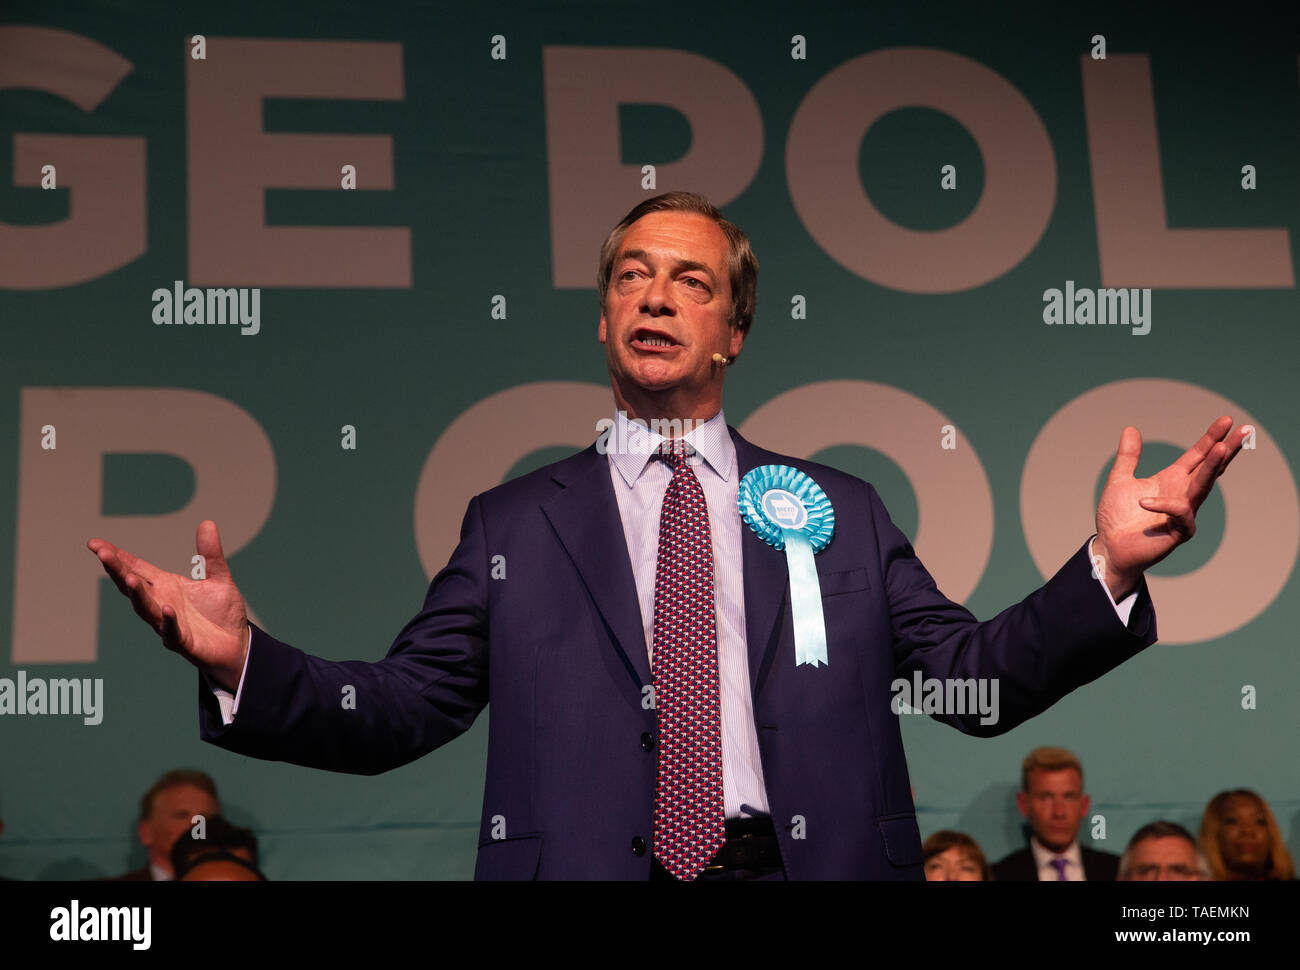 Brexit Party leader, Nigel Farage, speaks at a rally of 3,000 people in Kensington Olympia ahead of the European Elections on May 23rd. Stock Photo